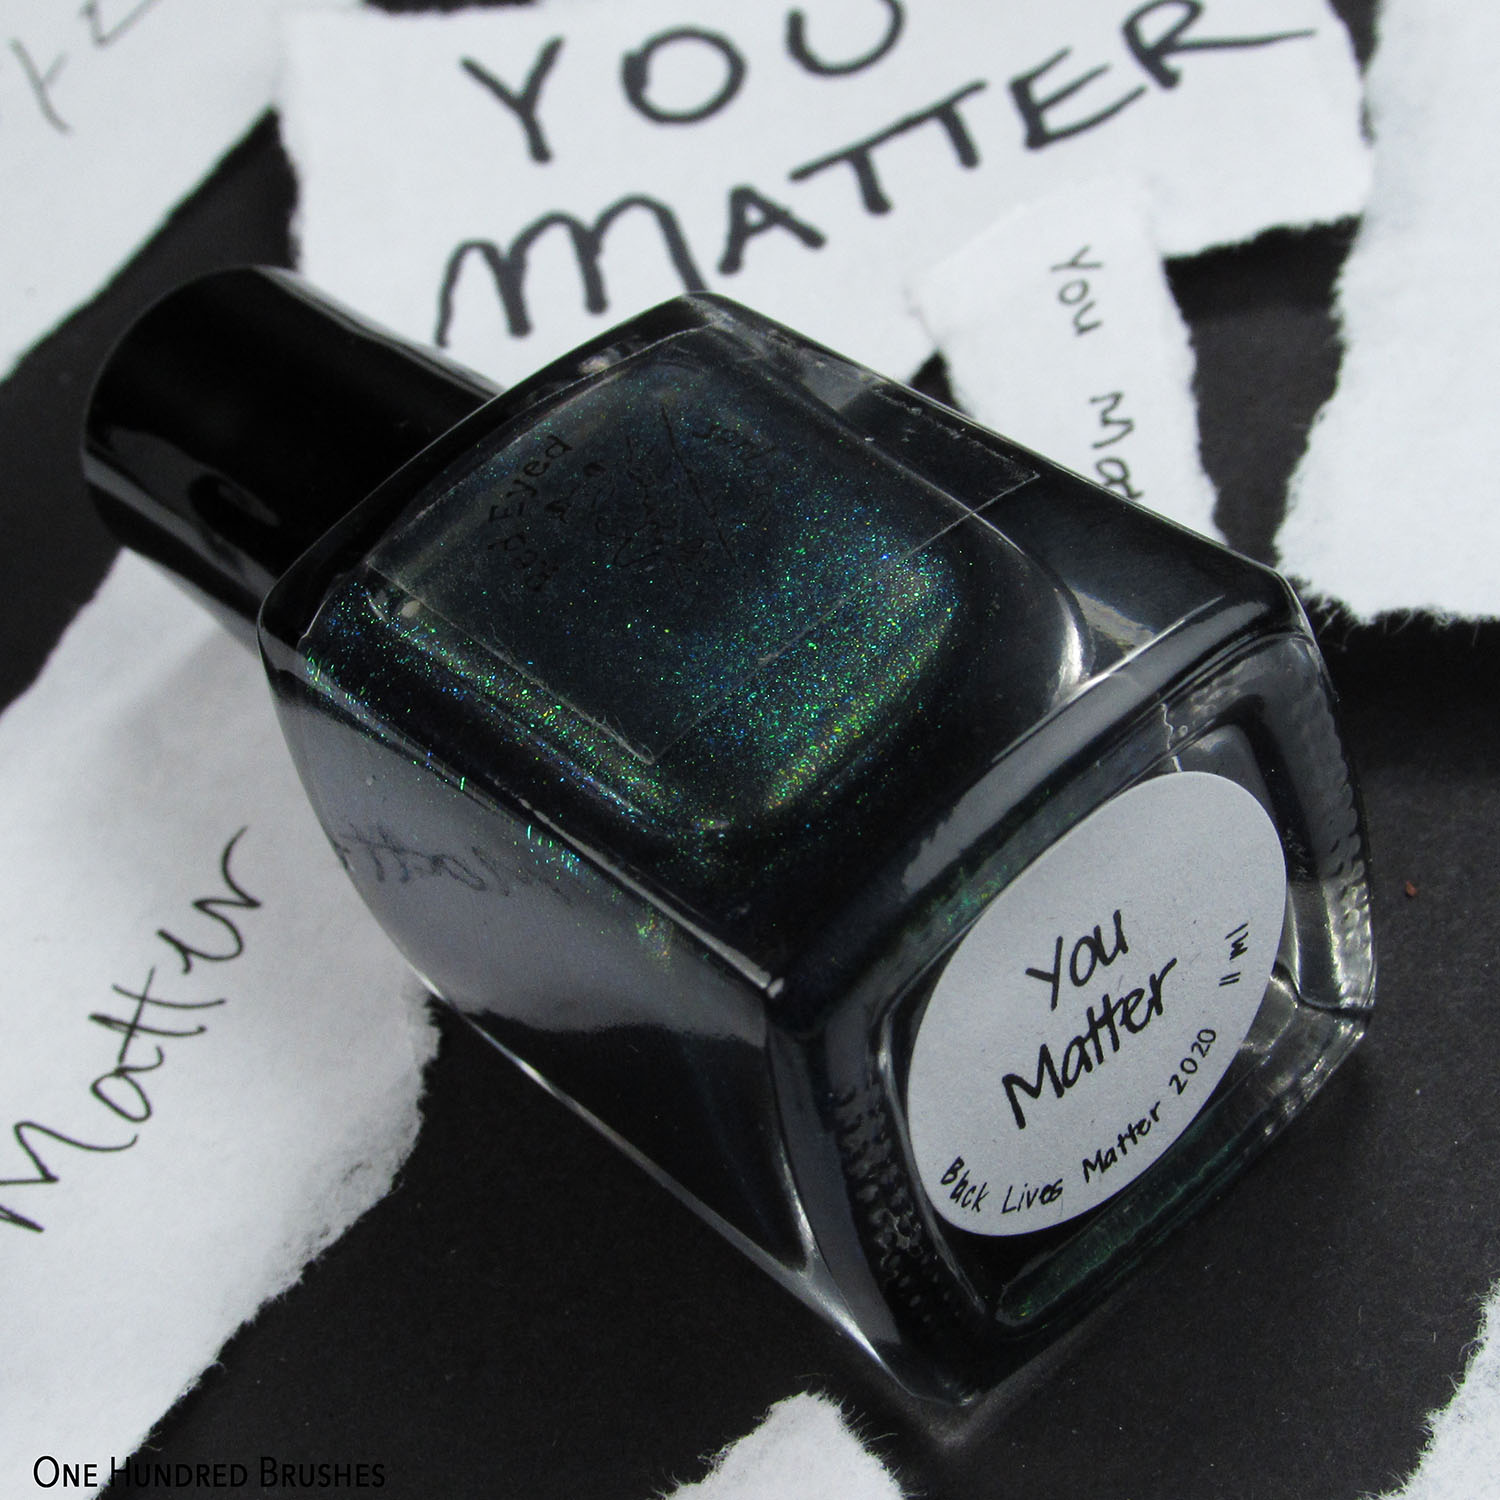 You Matter - Red Eyed Lacquer BLM 2020